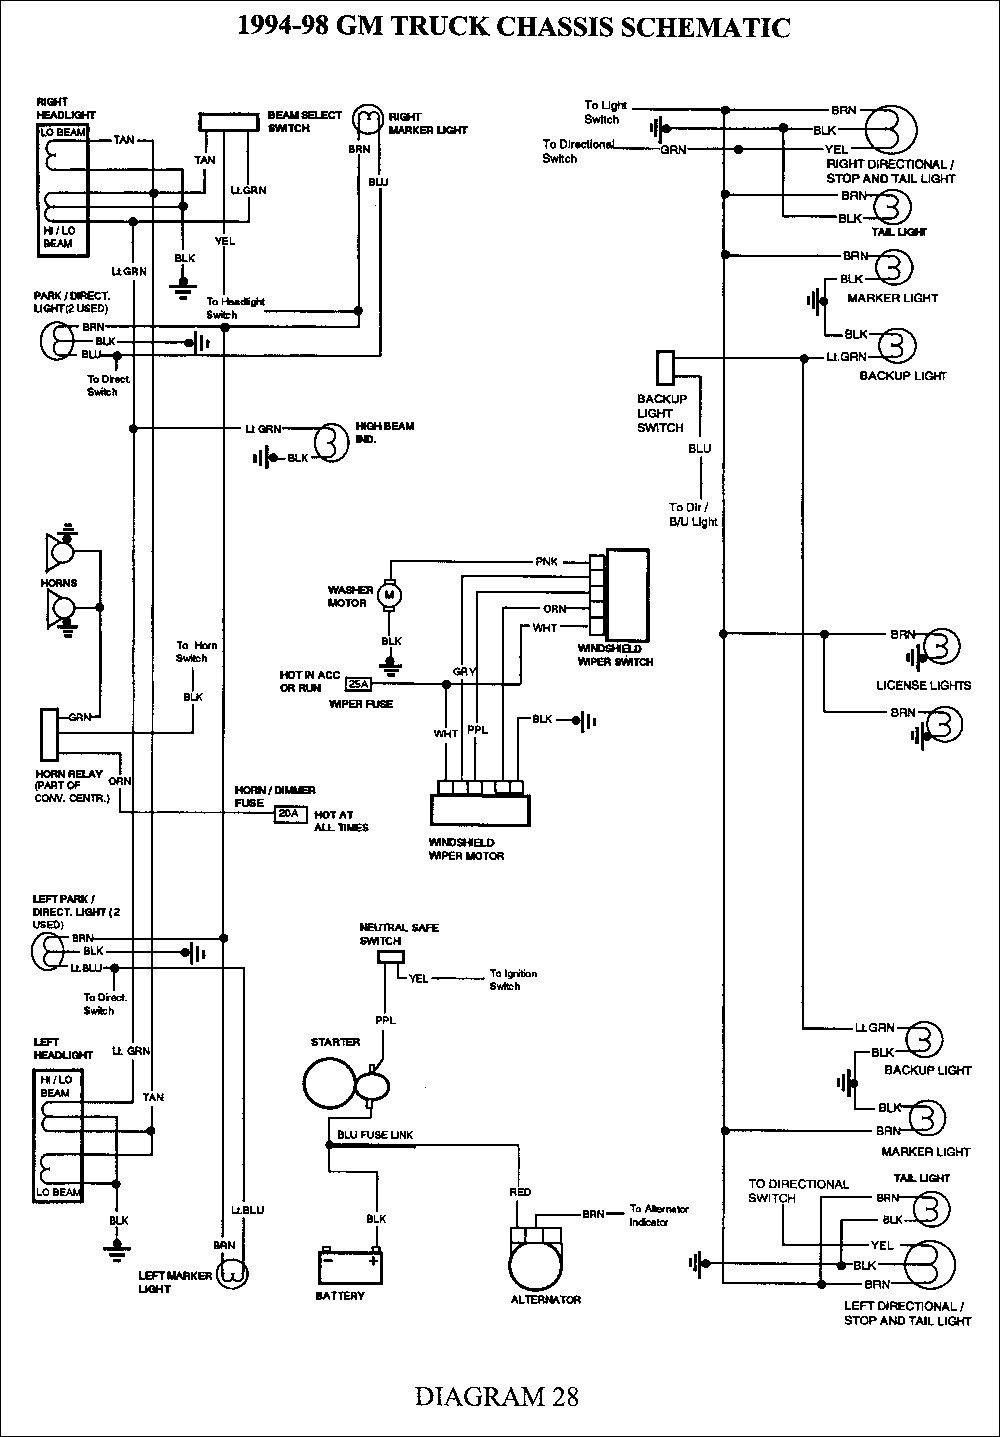 hight resolution of 2001 s10 ecm wiring schematic wiring diagram img 1989 s10 ecm wiring diagram